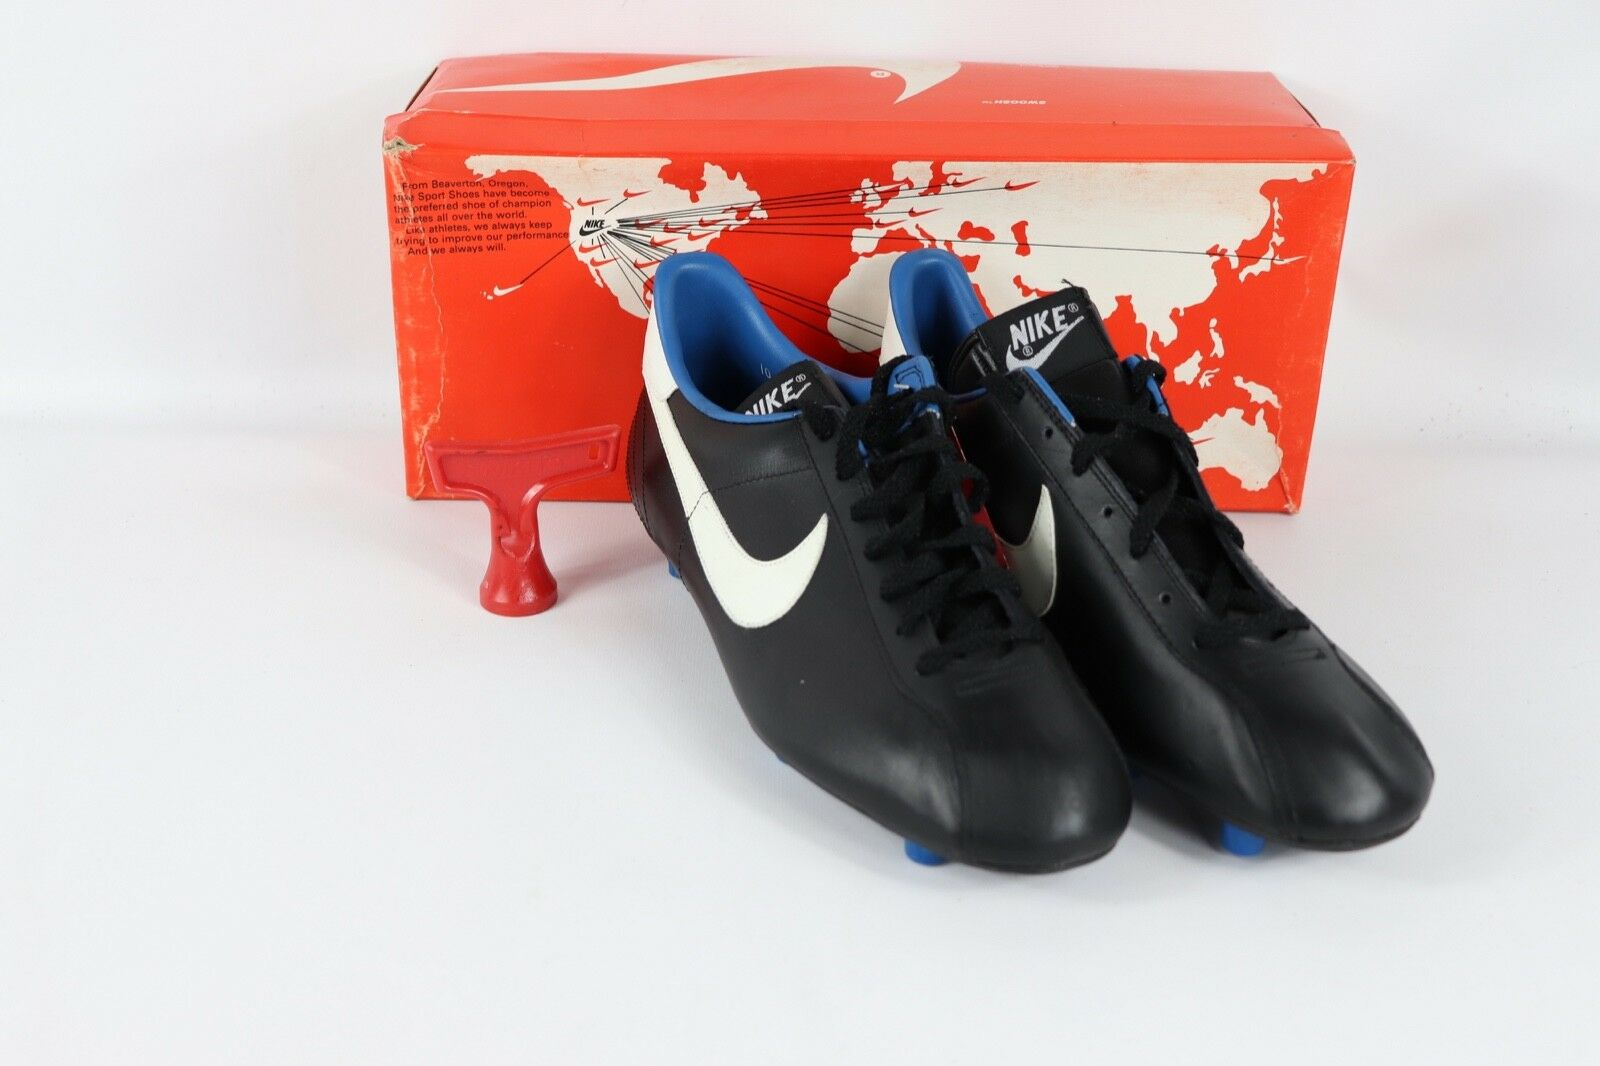 Vintage 80s New Nike Mens 11 Mirage M Soccer Cleats shoes Boots Black White